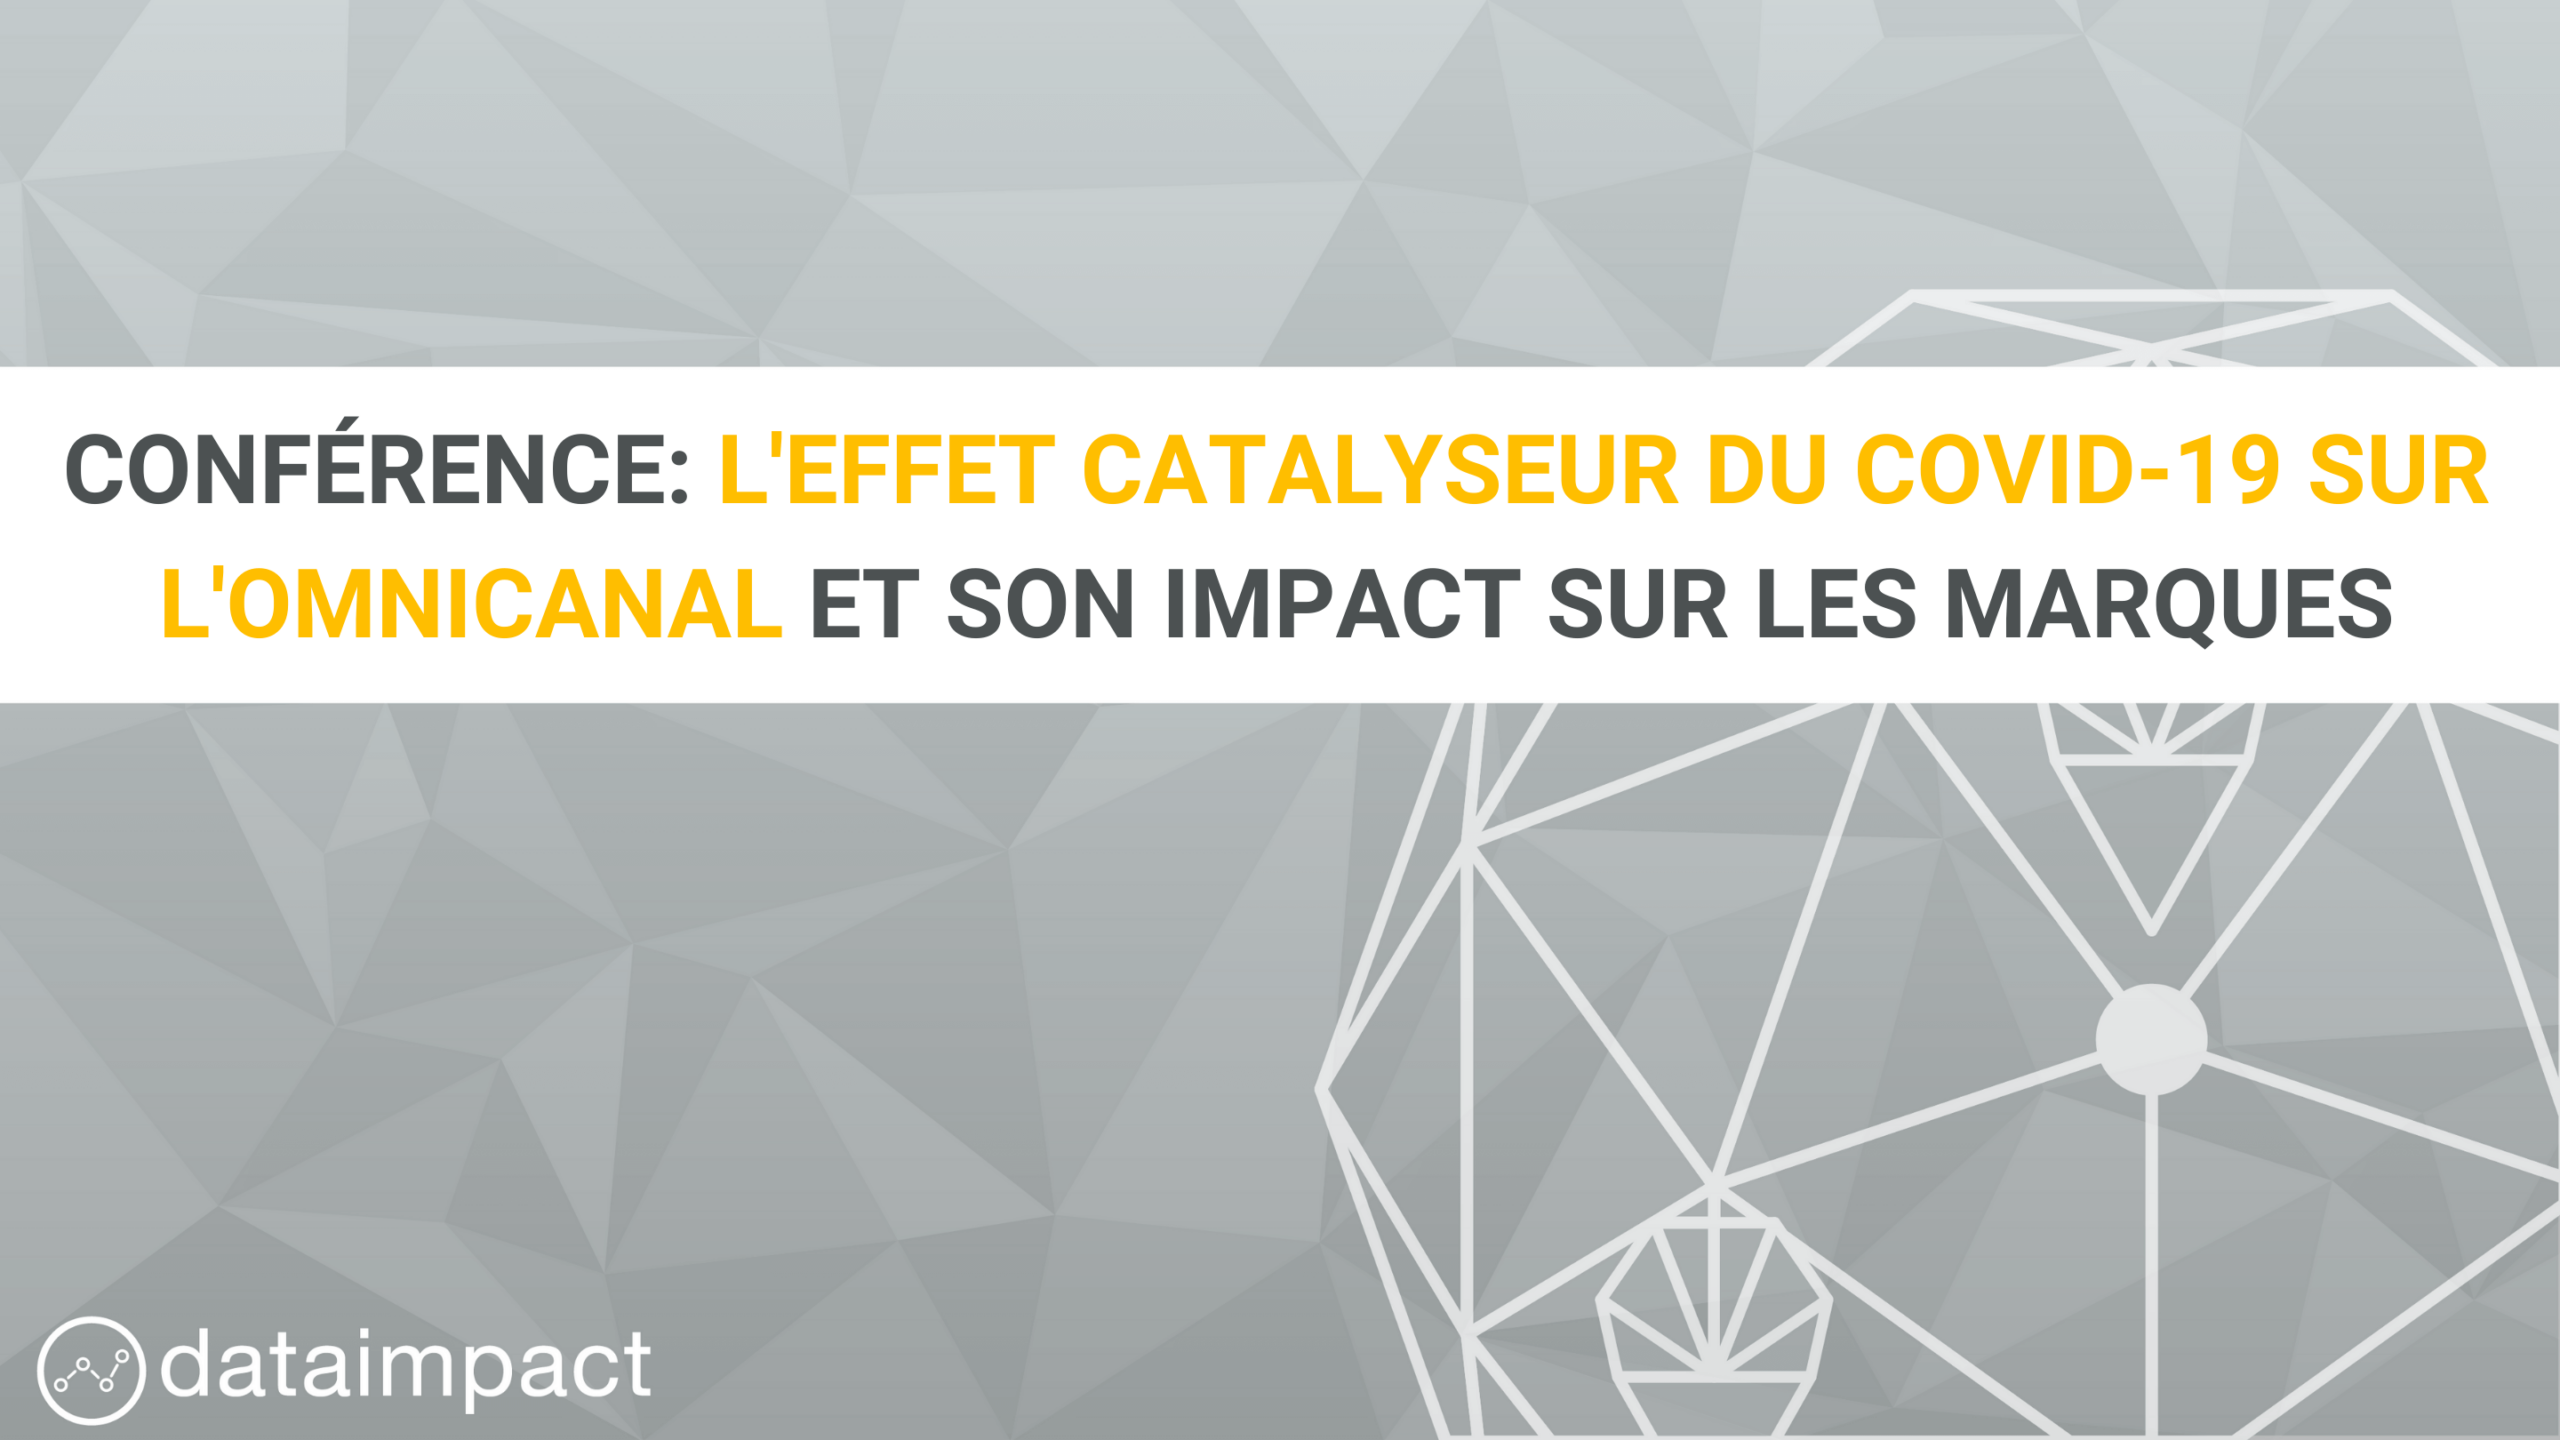 conférence effect catalyseur covid-19 omnicanal institut du commerce